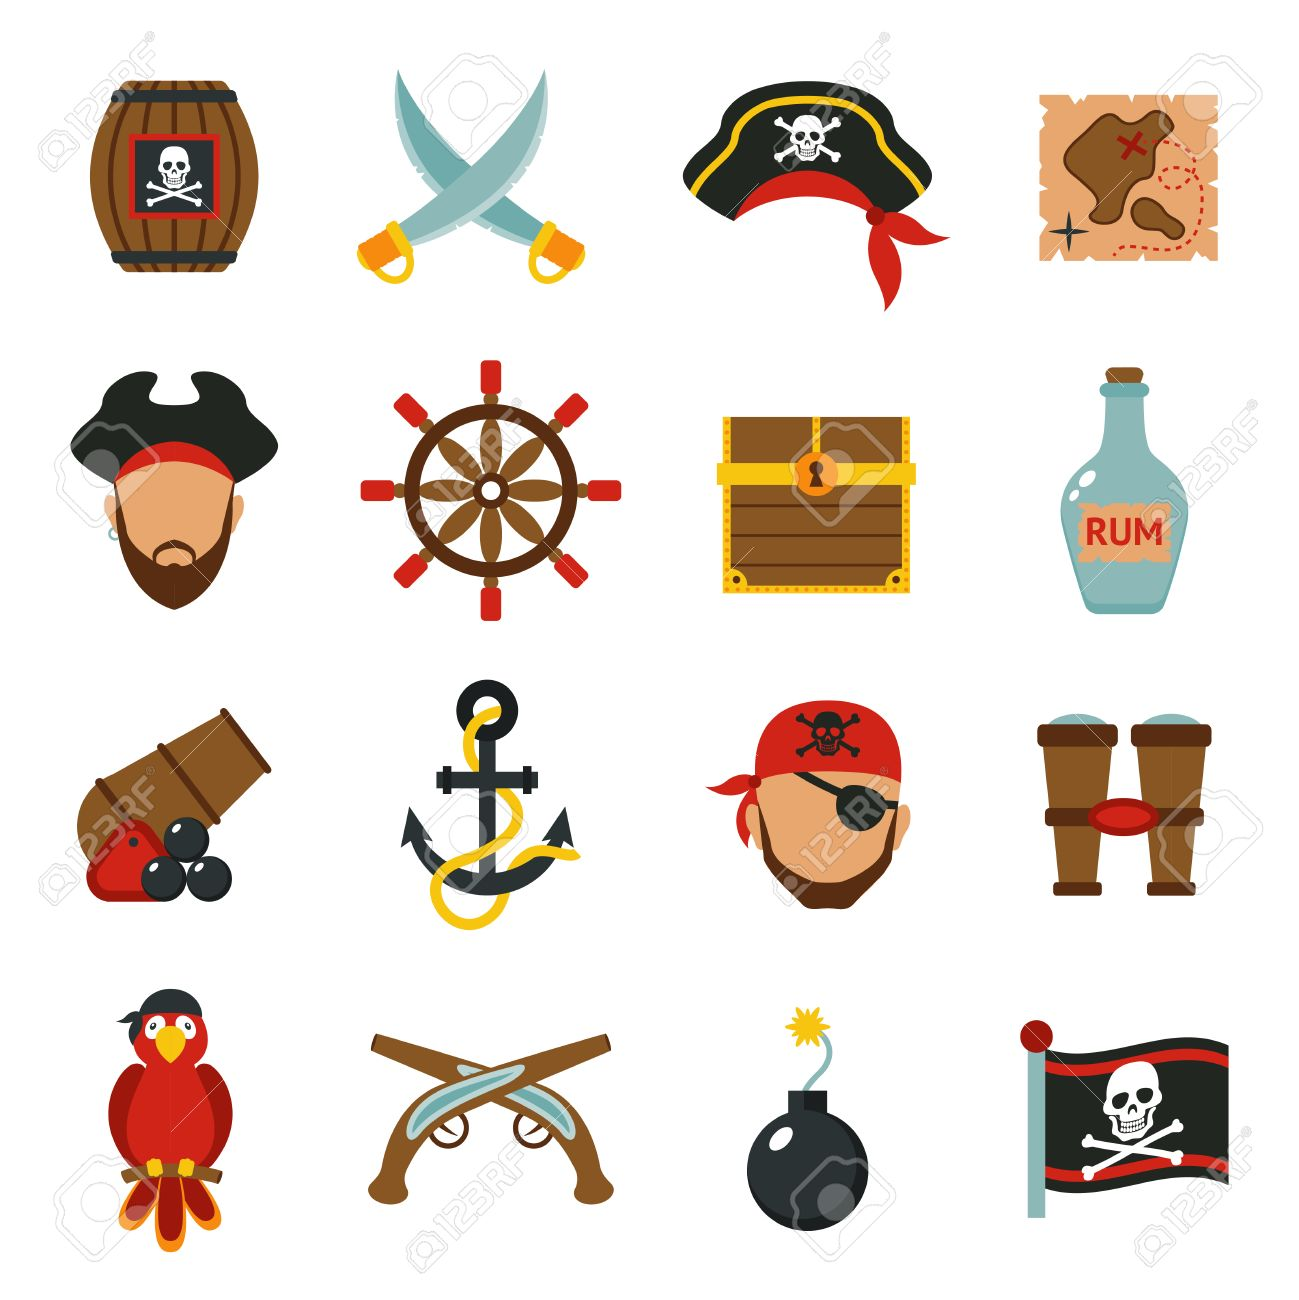 Pirate Accessories Symbols Flat Icons Collection With Wooden